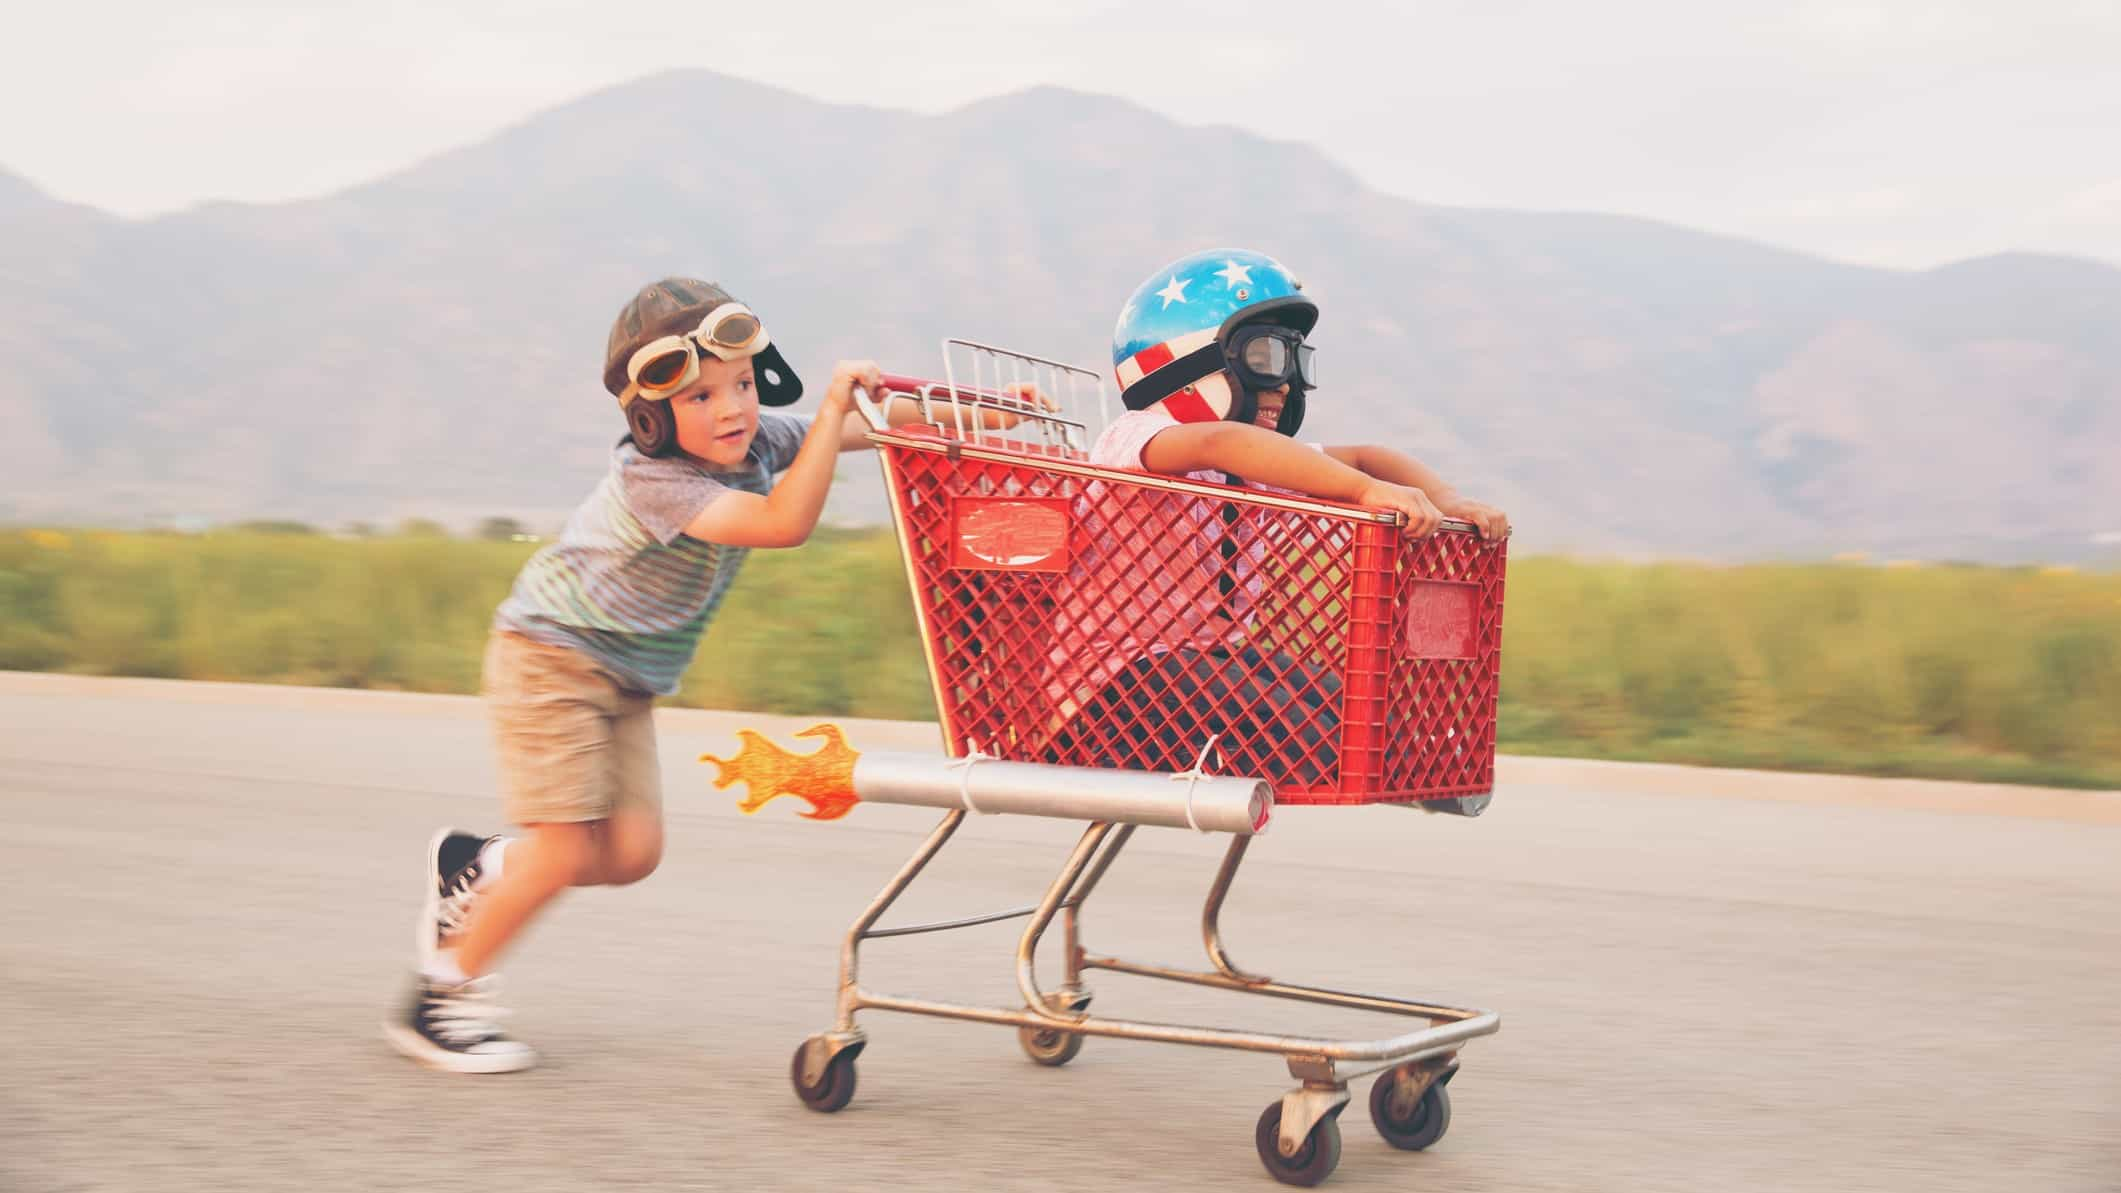 A young boy pushing his friend in a shopping trolley race along the road.